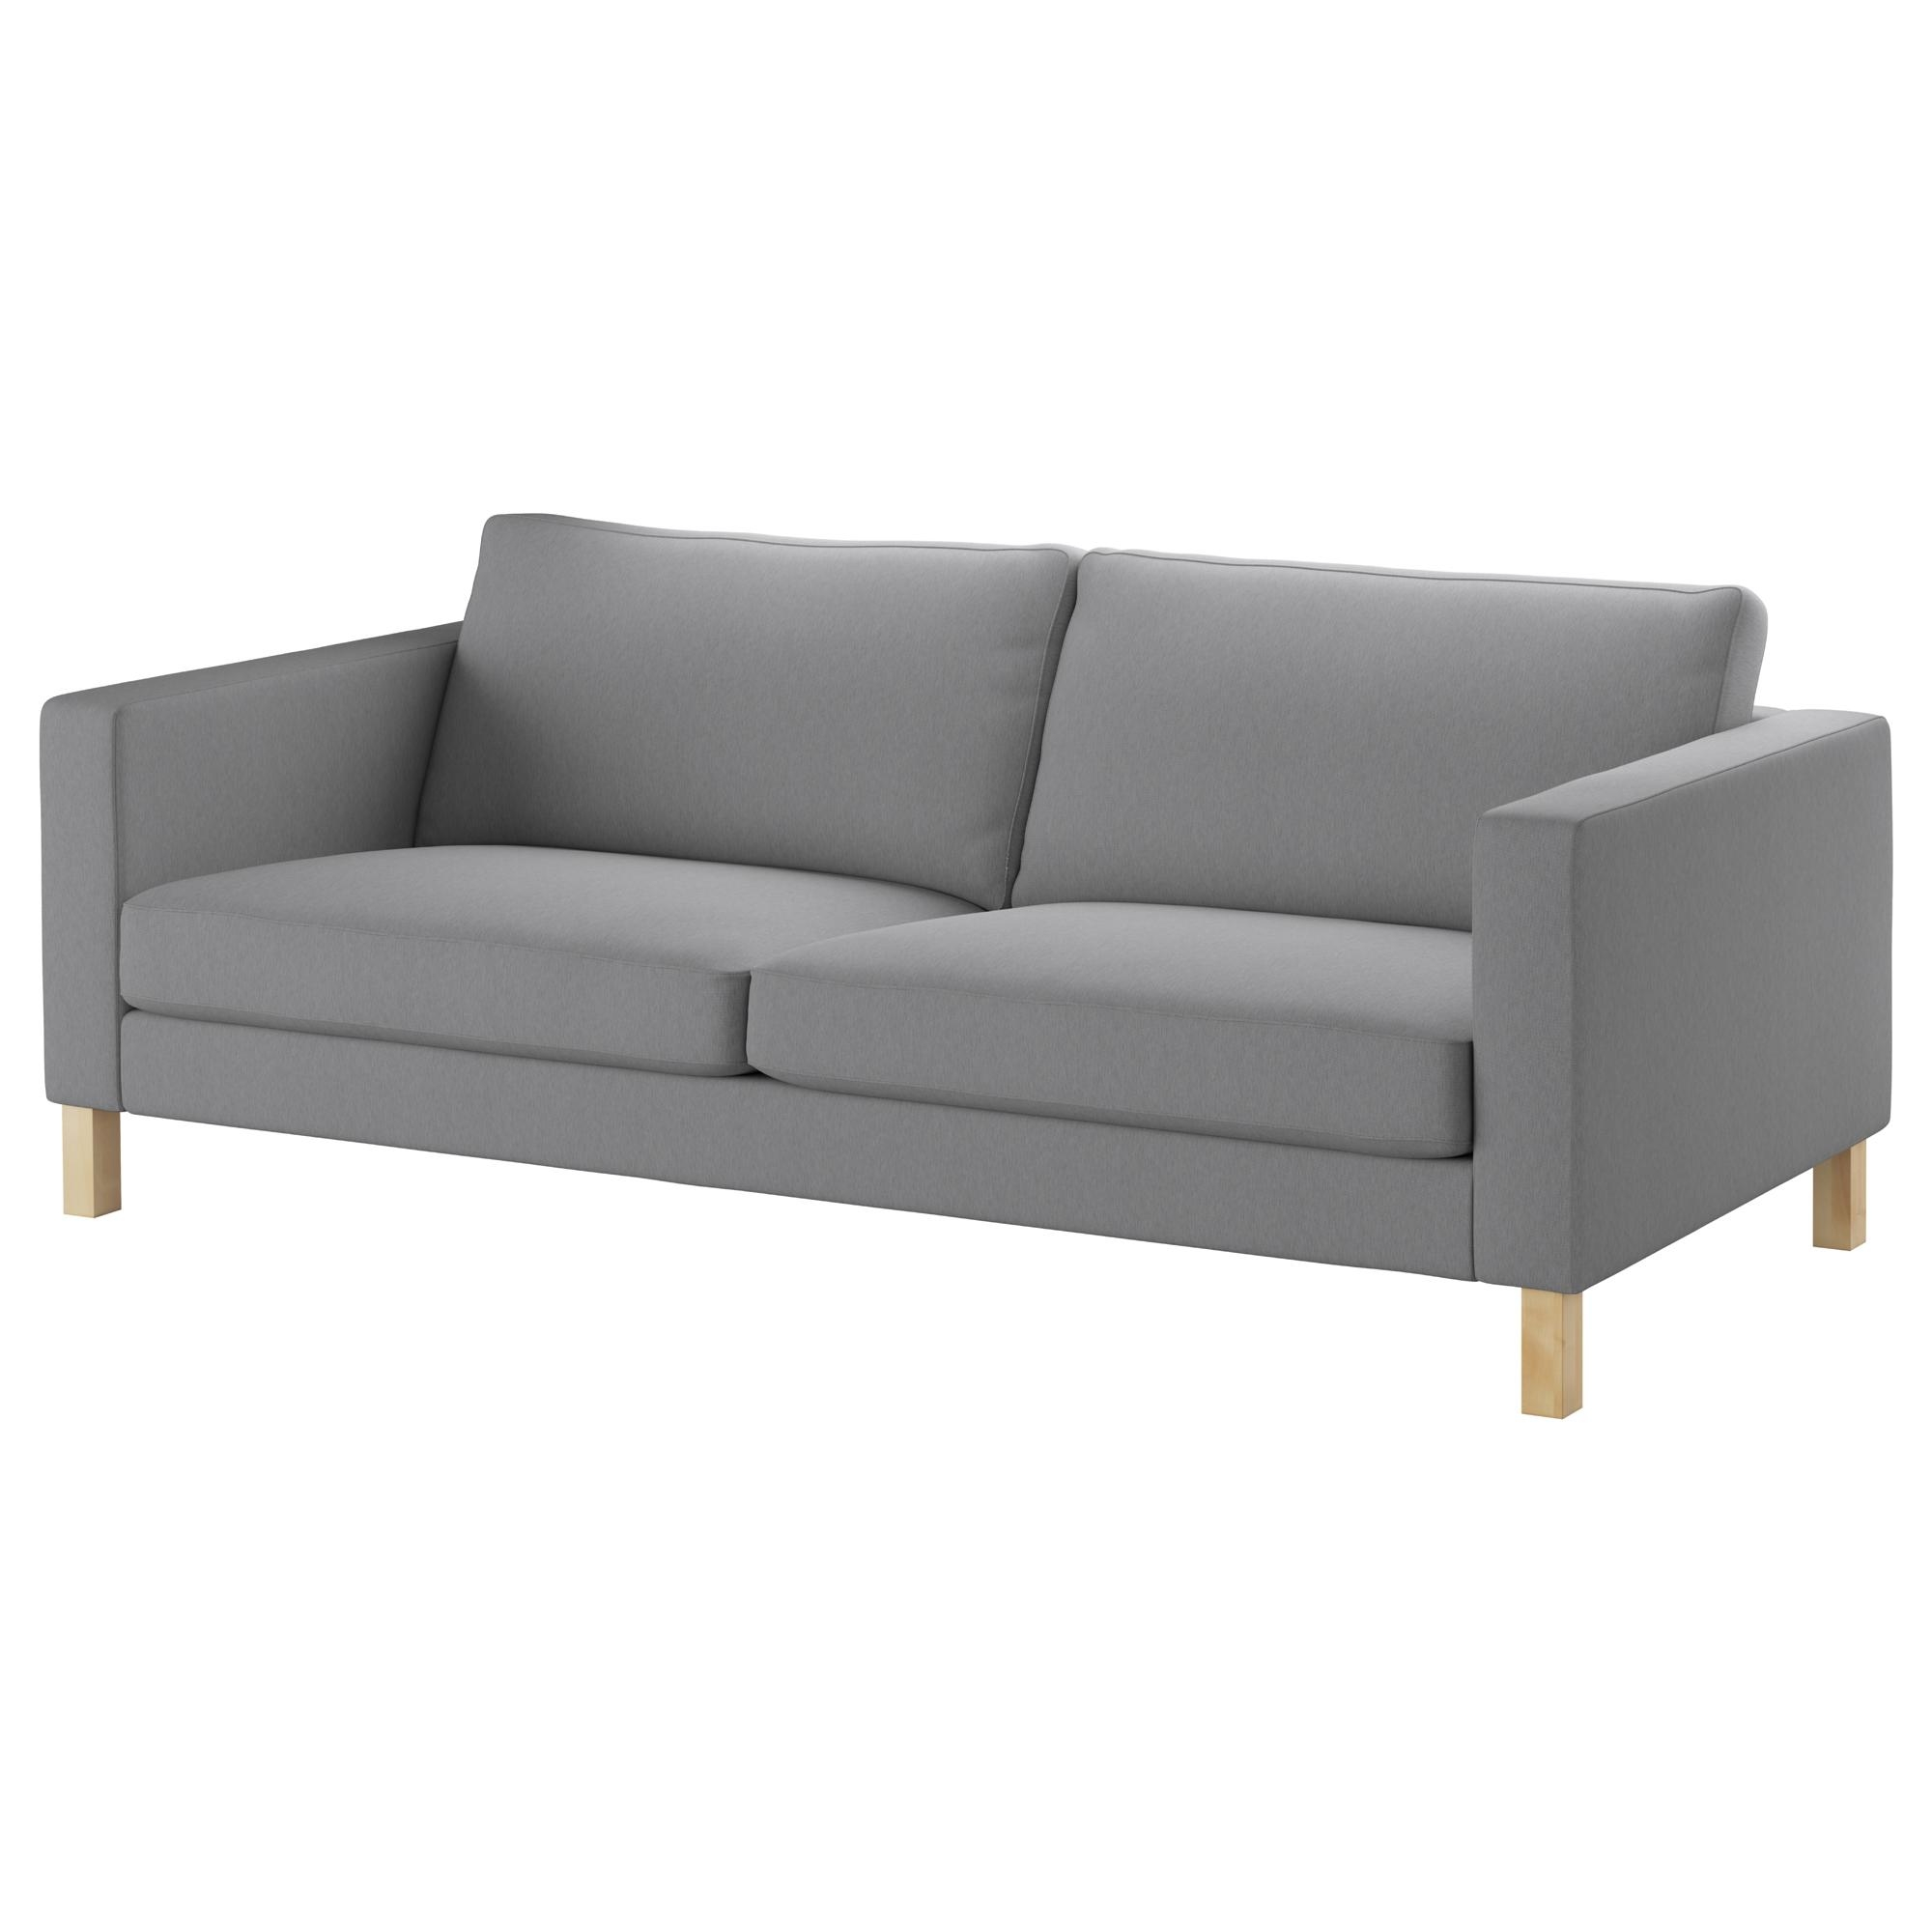 Sofa Covers – Ikea Inside Covers For Sofas (View 18 of 20)